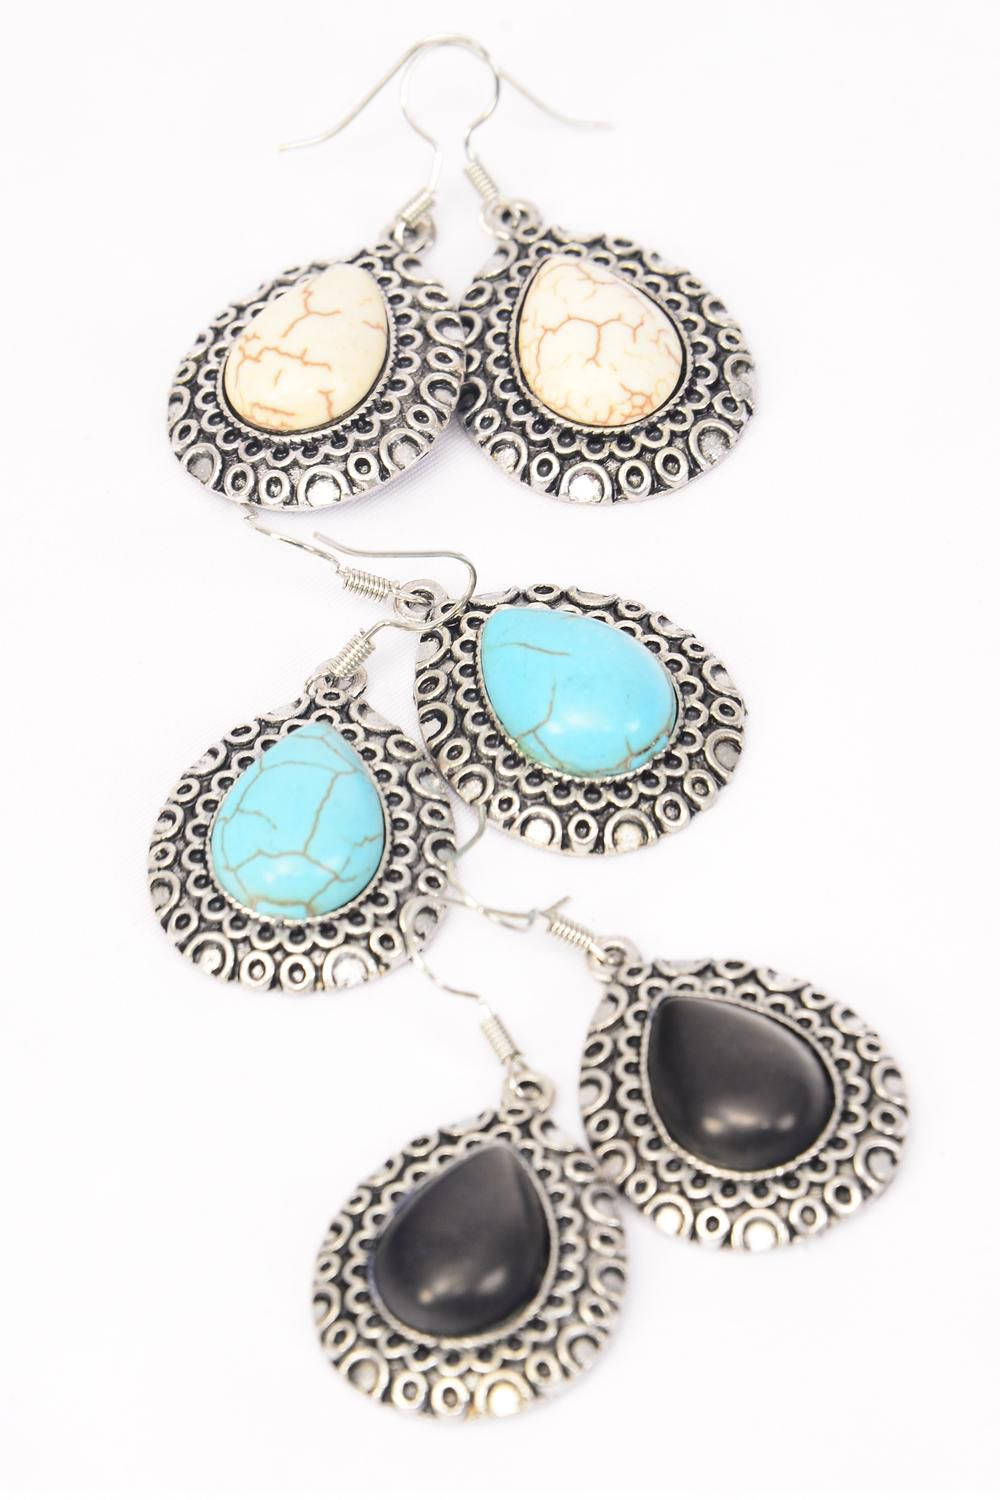 "Earrings Metal Antique Teardrop Semiprecious Stone/DZ **Fish Hook** Size-1.25""x 1"" Wide,3 Black,3 Ivory,6 Turquoise Asst,Earring Card & OPP Bag & UPC Code -"